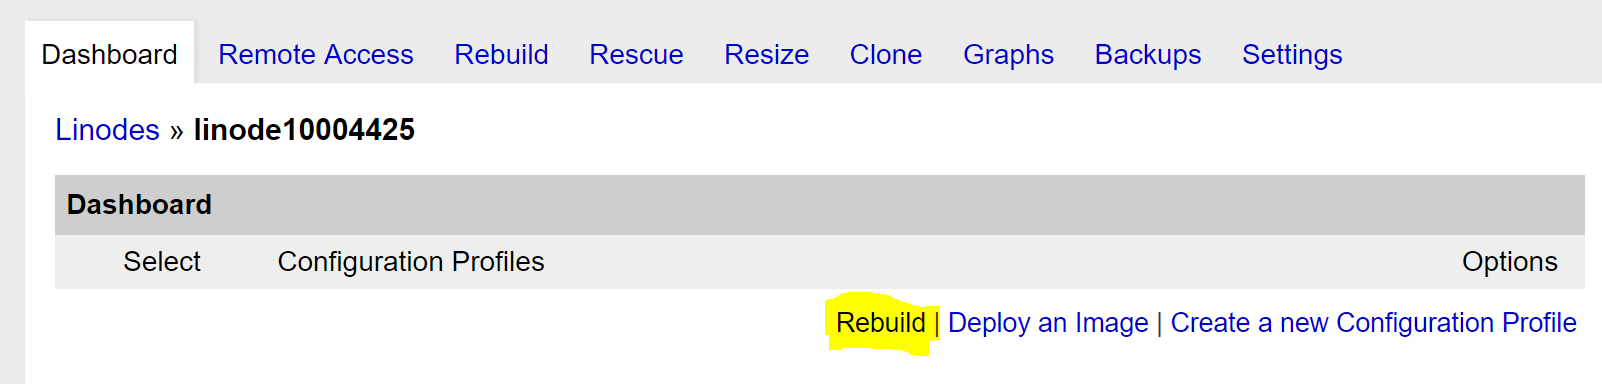 Rebuild the Linode